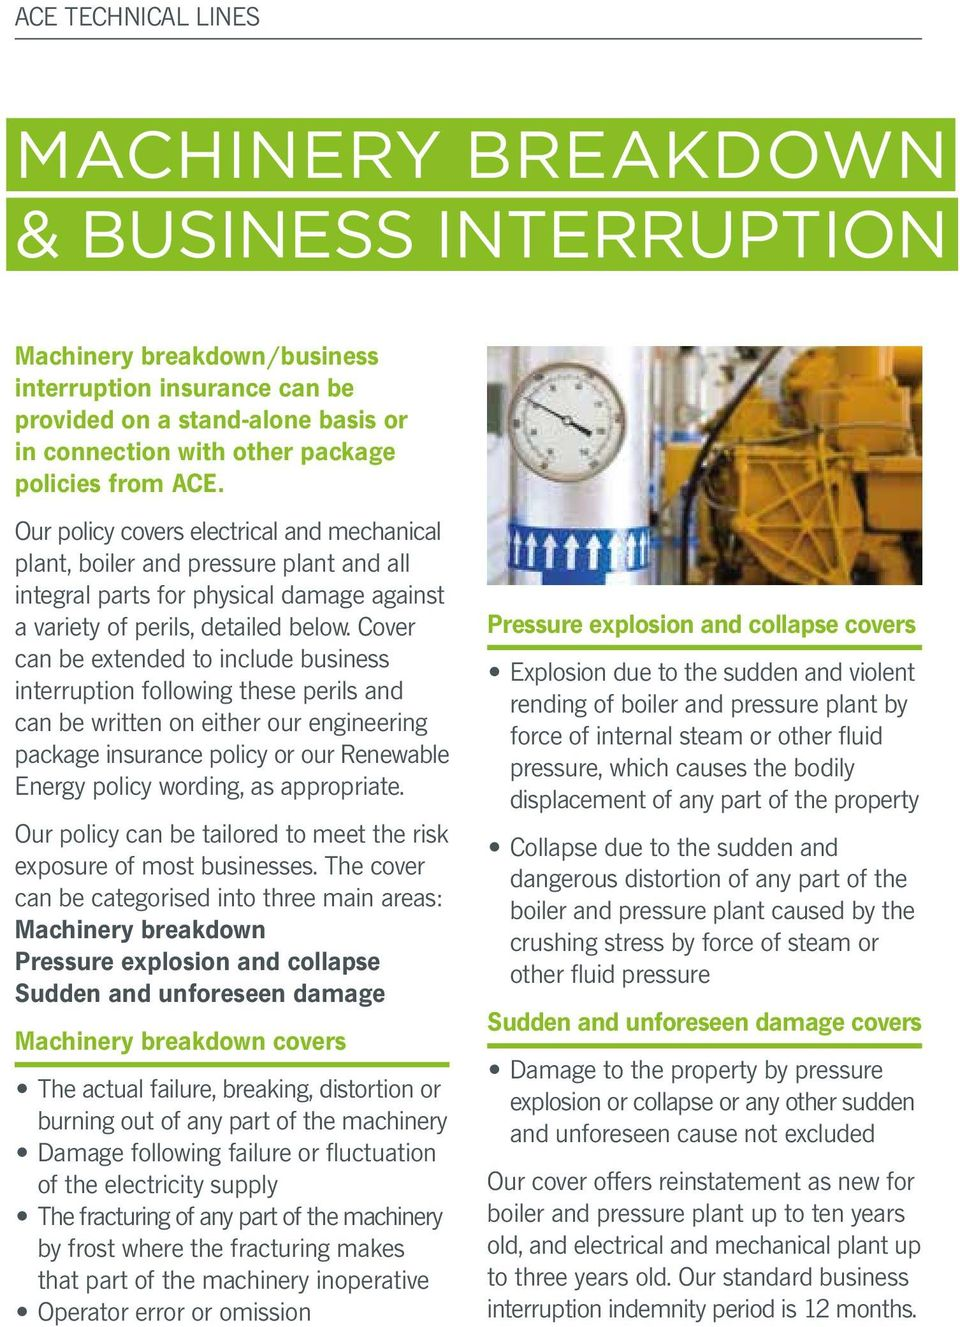 Cover can be extended to include business interruption following these perils and can be written on either our engineering package insurance policy or our Renewable Energy policy wording, as